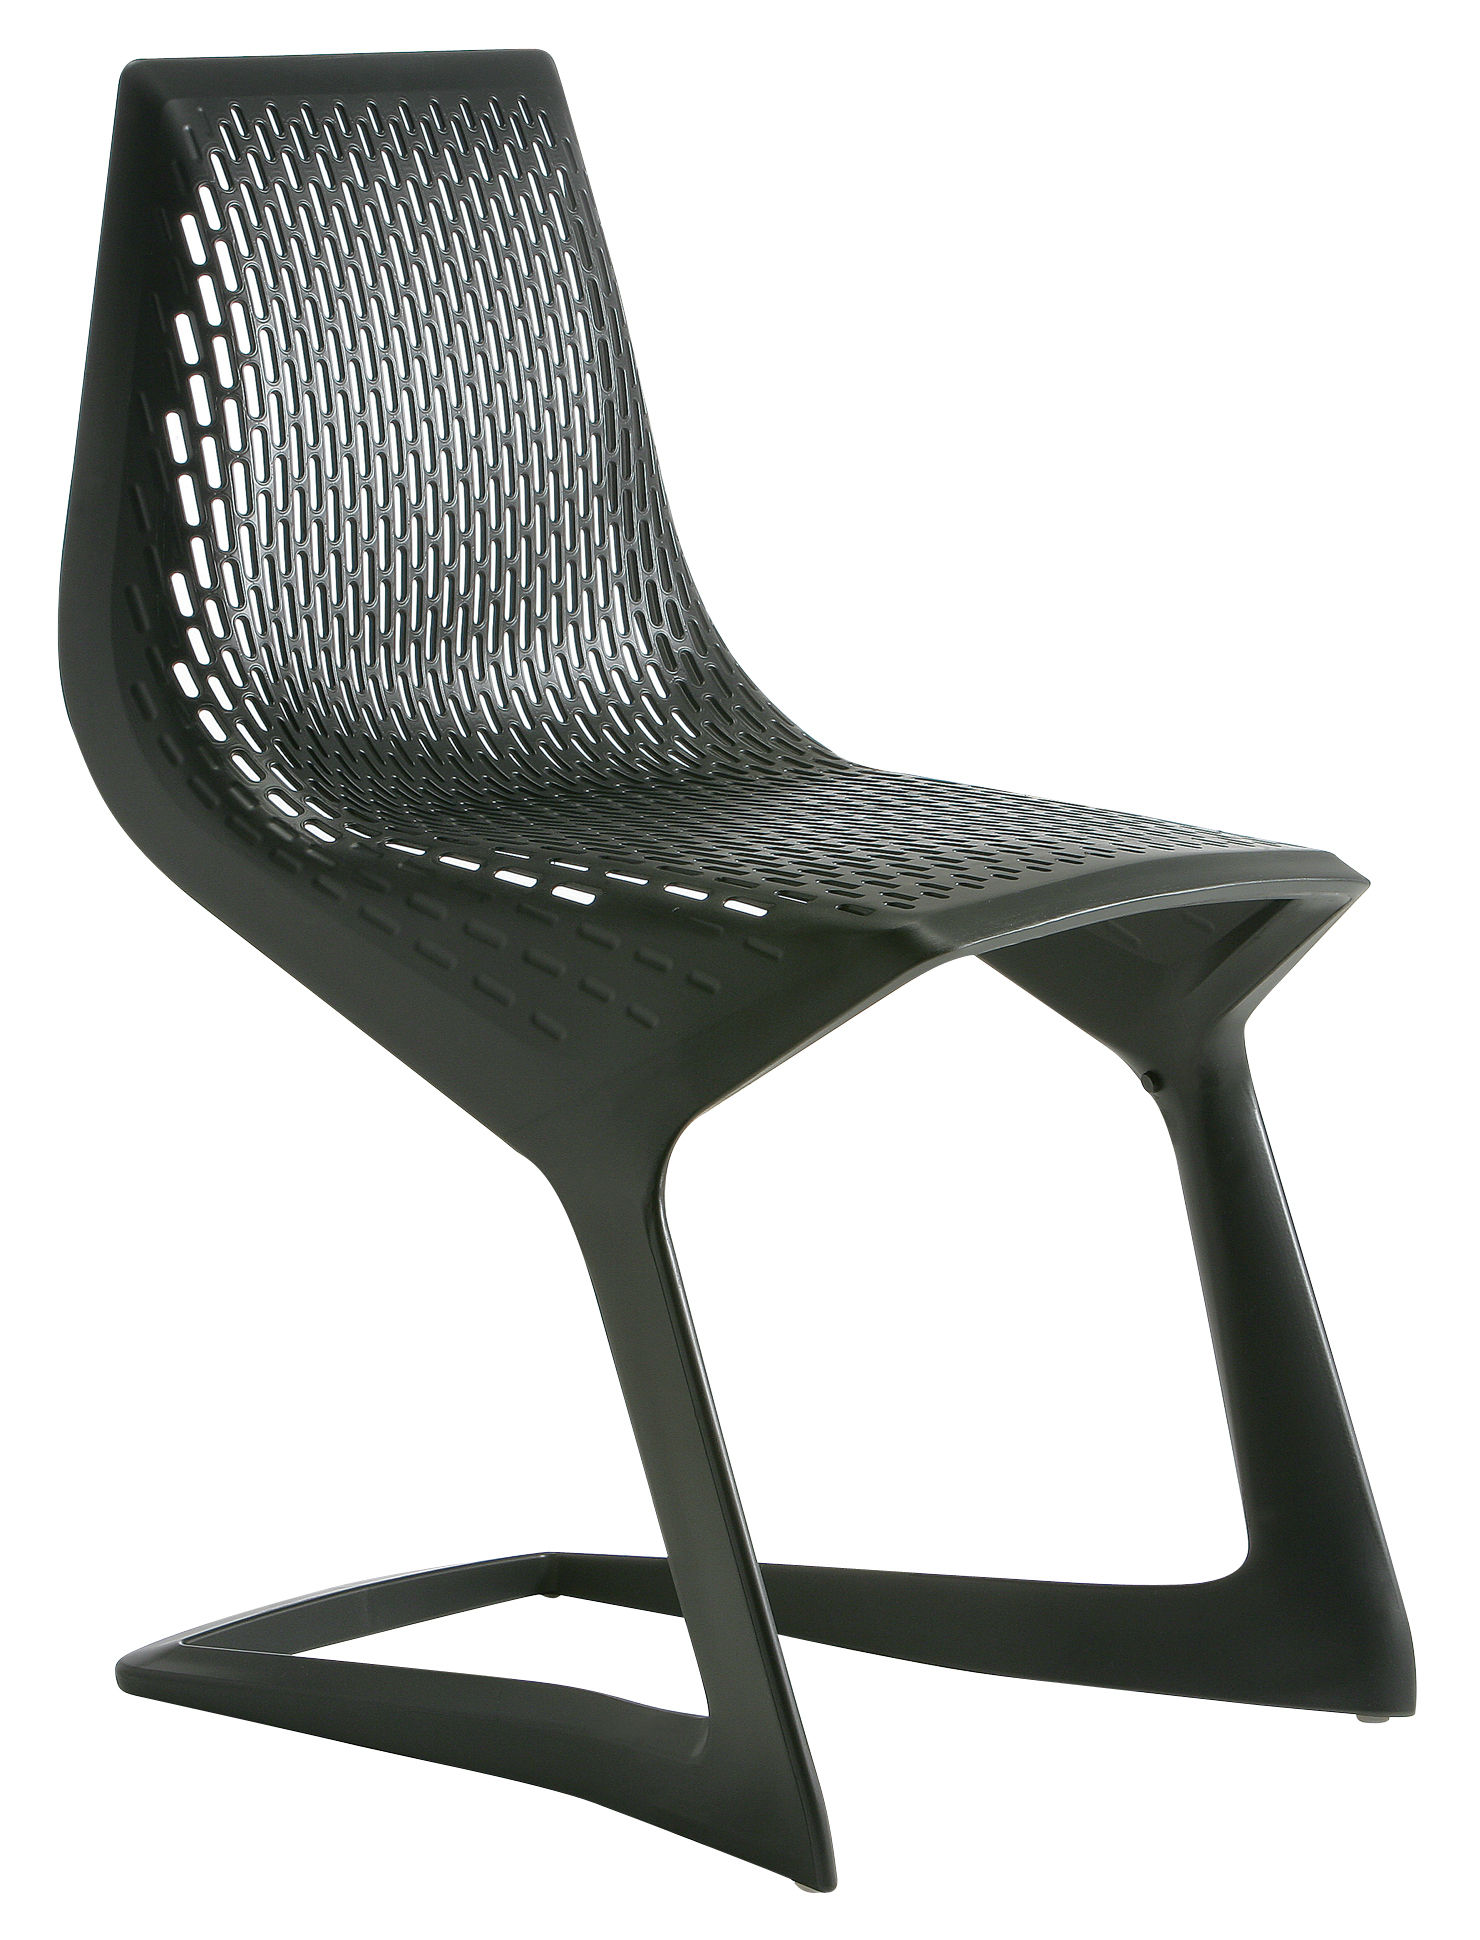 Furniture - Chairs - Myto Stacking chair - Plastic by Plank - Black - Plastic material